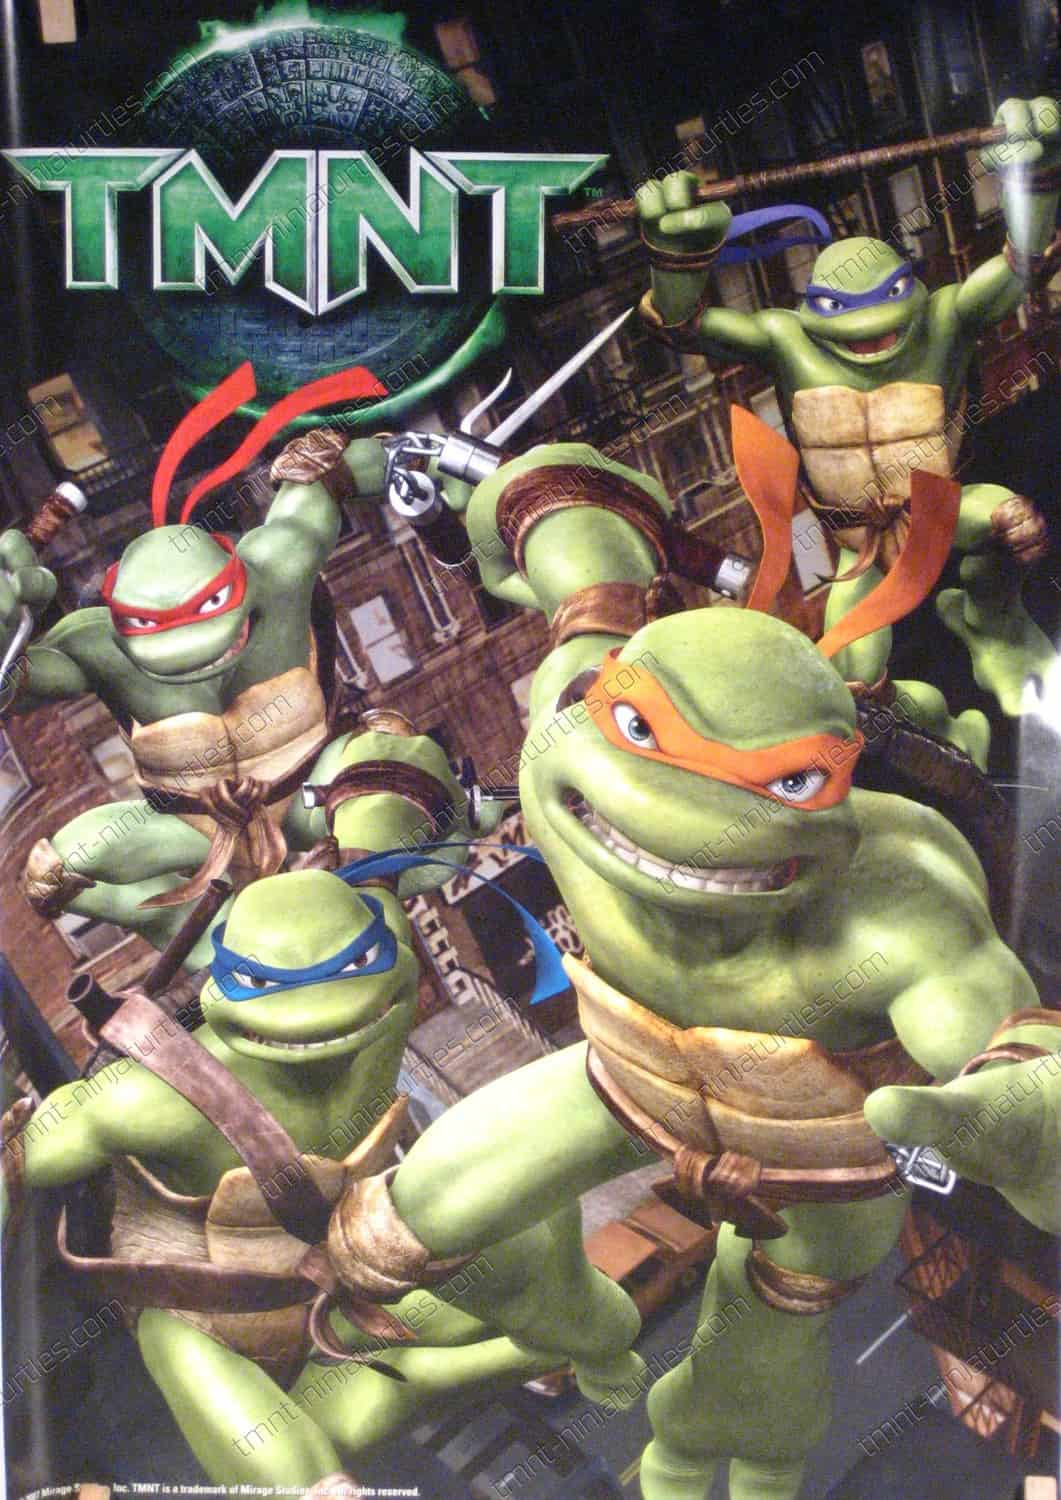 {Posters / Wall Hangings} TMNT Movie 2007 Poster -TMNT ...